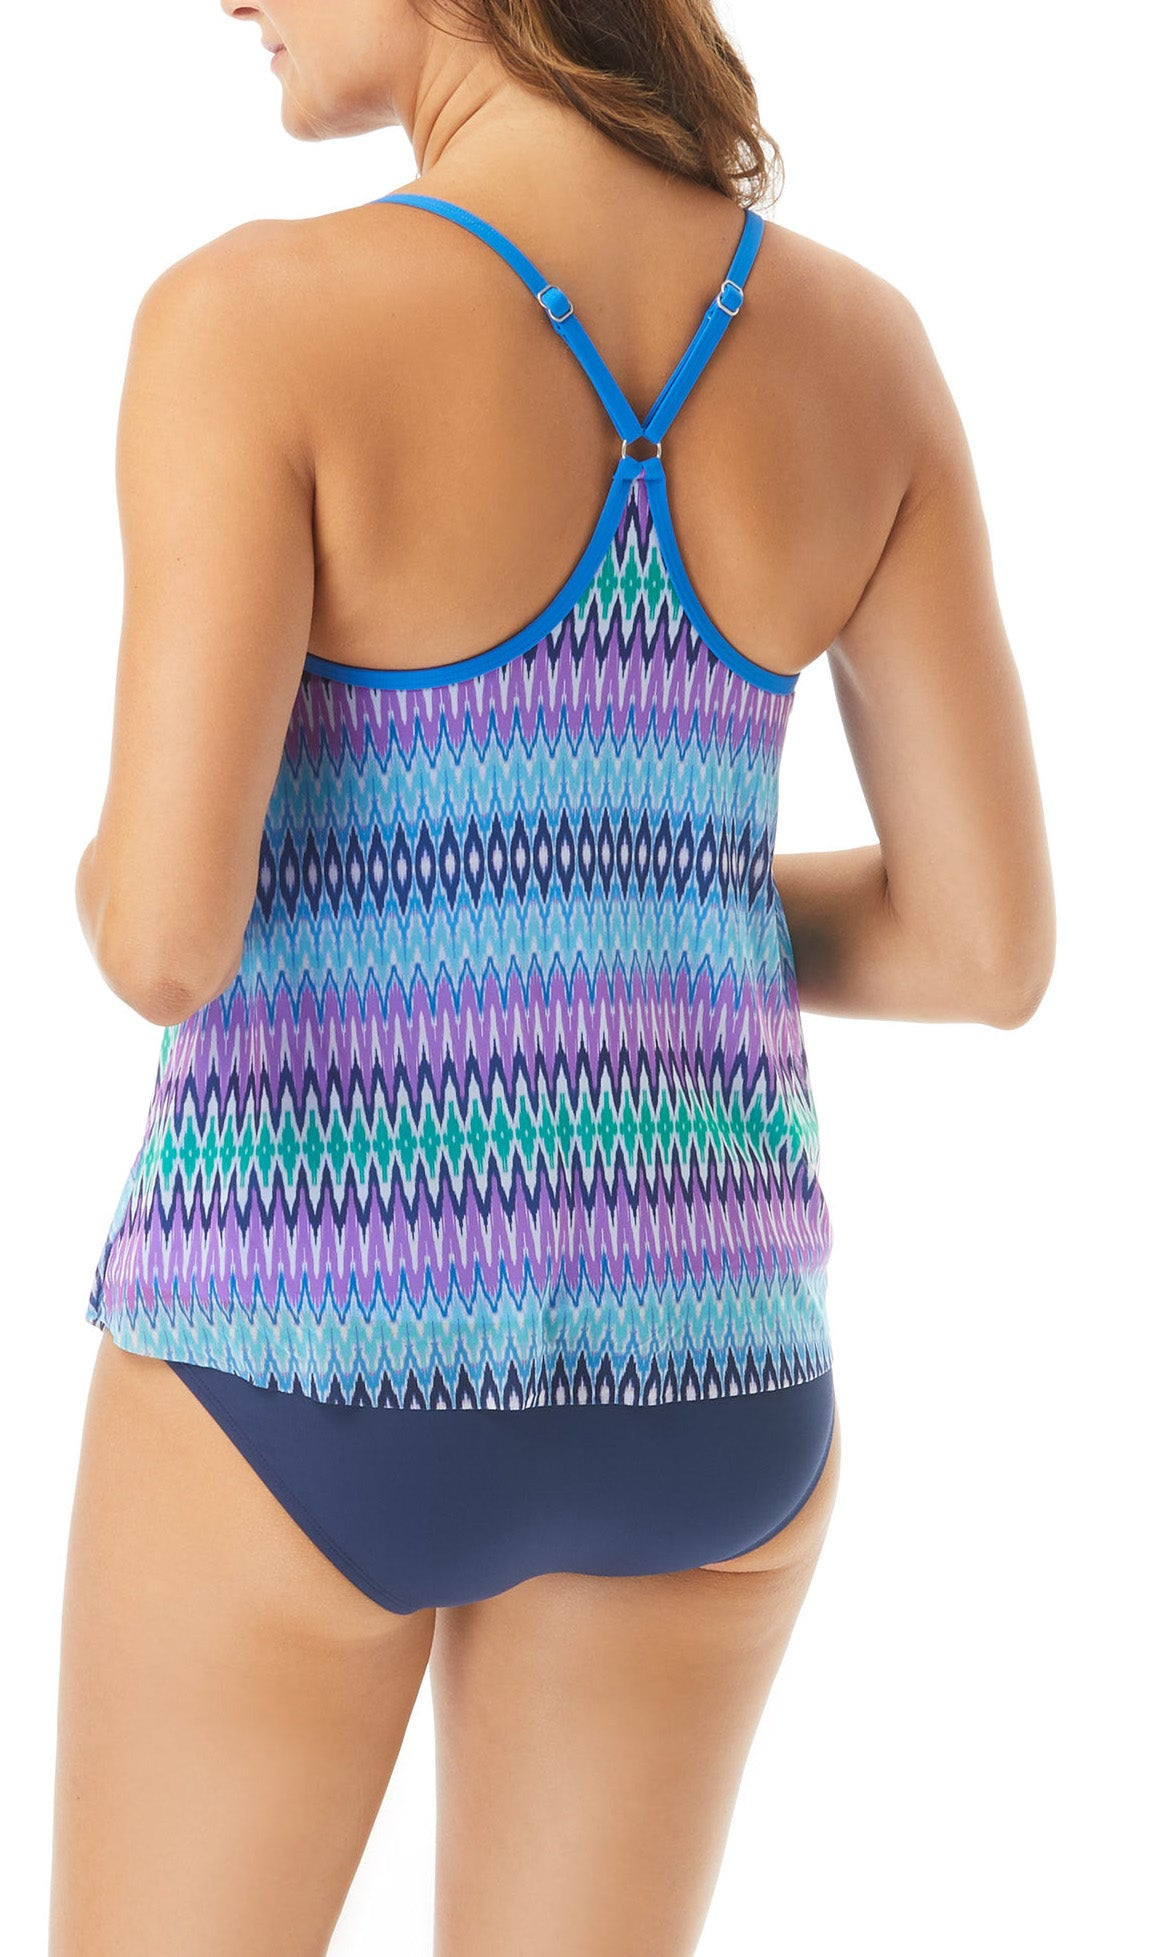 Underwire Tankini Top Adjustable Straps Removable Soft Cups UPF 50+ 4 Way Stretch Soft Touch Comfort Fabric Chlorine Resistant Fully Lined Swimsuit Fabric: 85% Nylon/15% LYCRA® XTRA LIFE™ Mesh Fabric: 95% Nylon/5% Spandex Hand Wash Cold, Line Dry Product Number: H31715